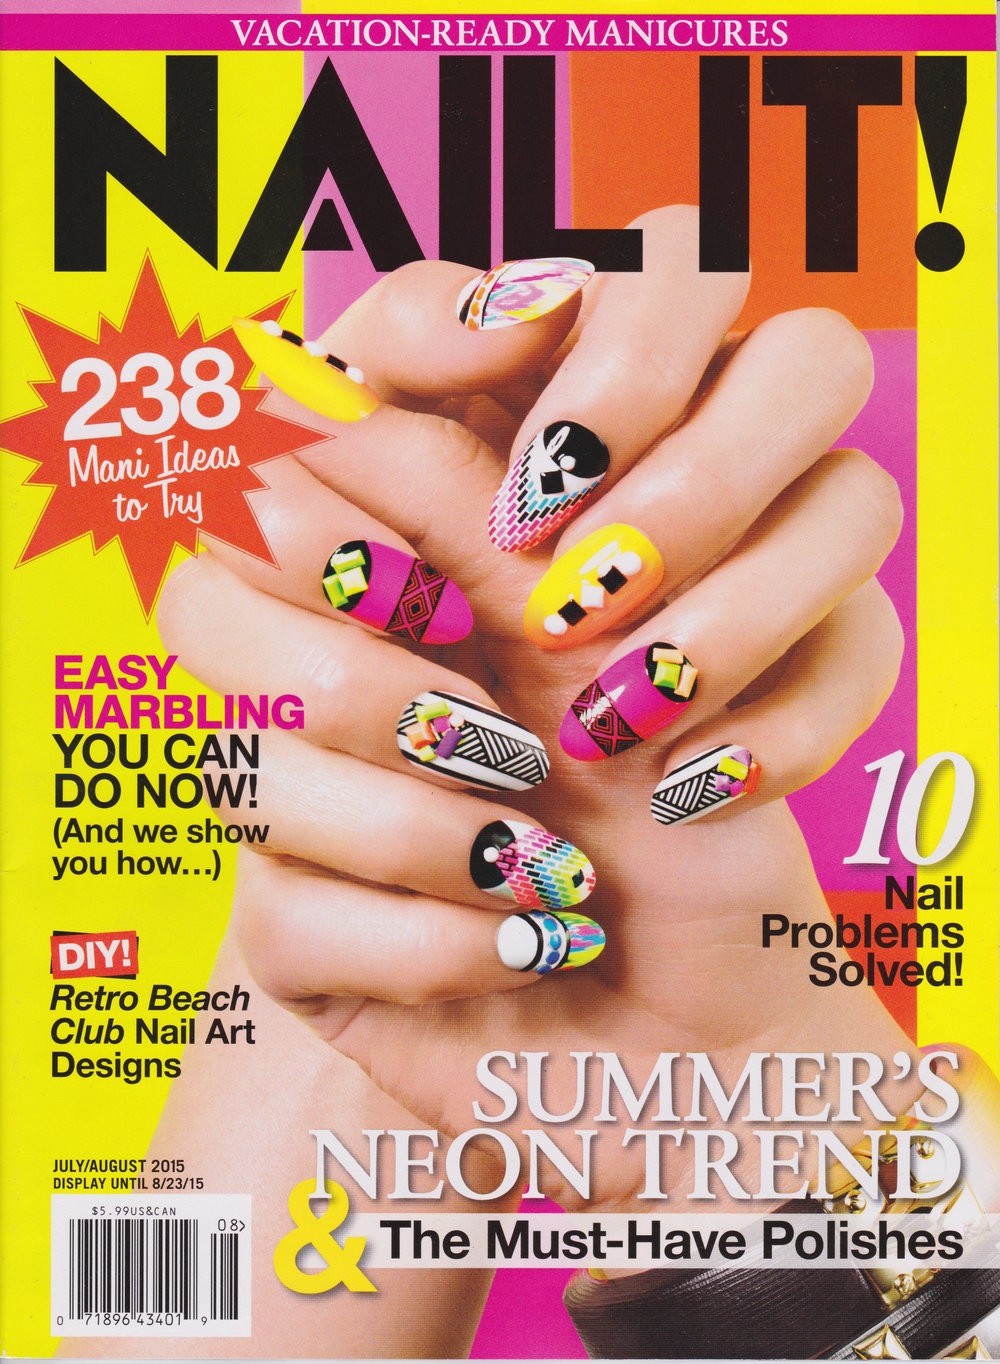 NAIL IT/July Aug 2015